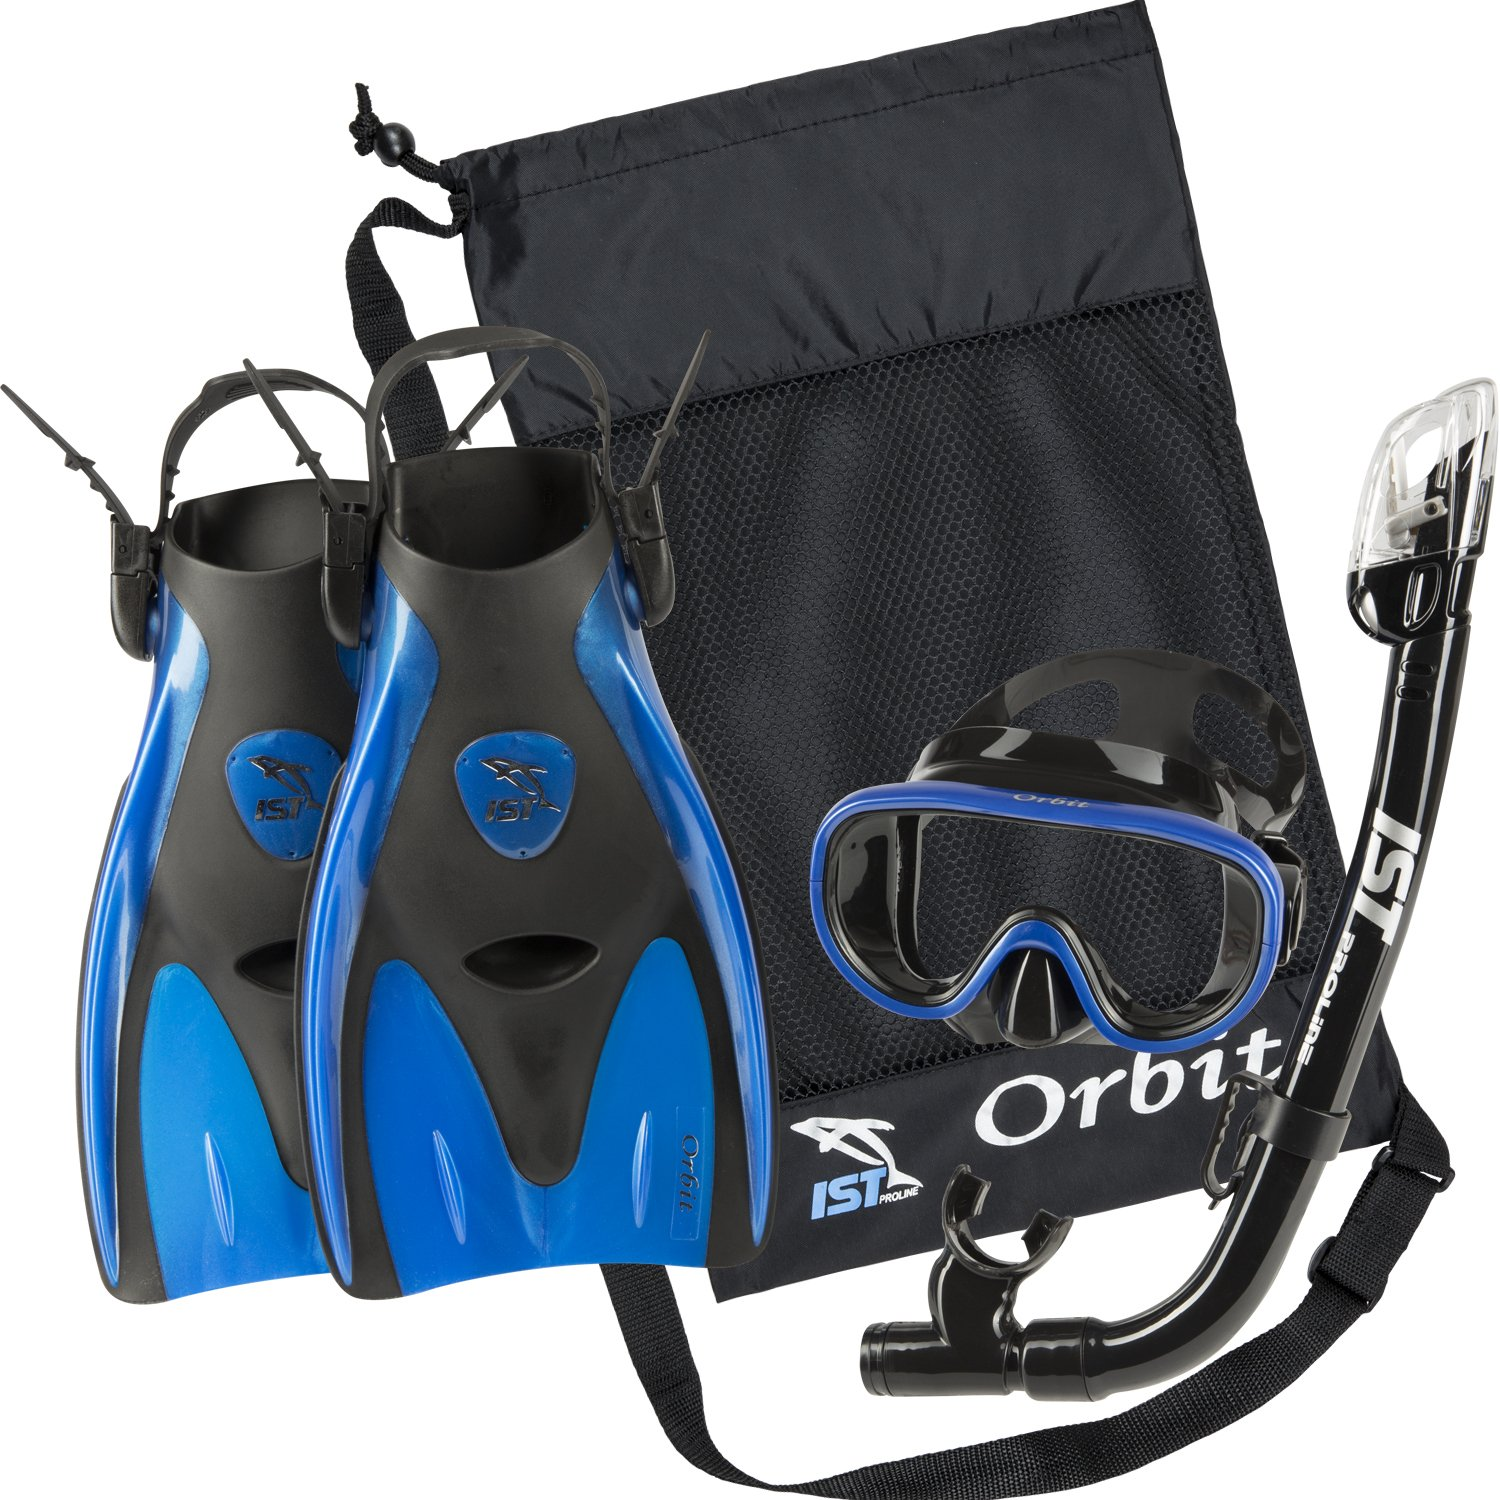 IST Orbit Snorkeling Gear Set: Tempered Glass Mask, Dry Top Snorkel & Trek Fins for Compact Travel (Black Silicone/Blue, Small)